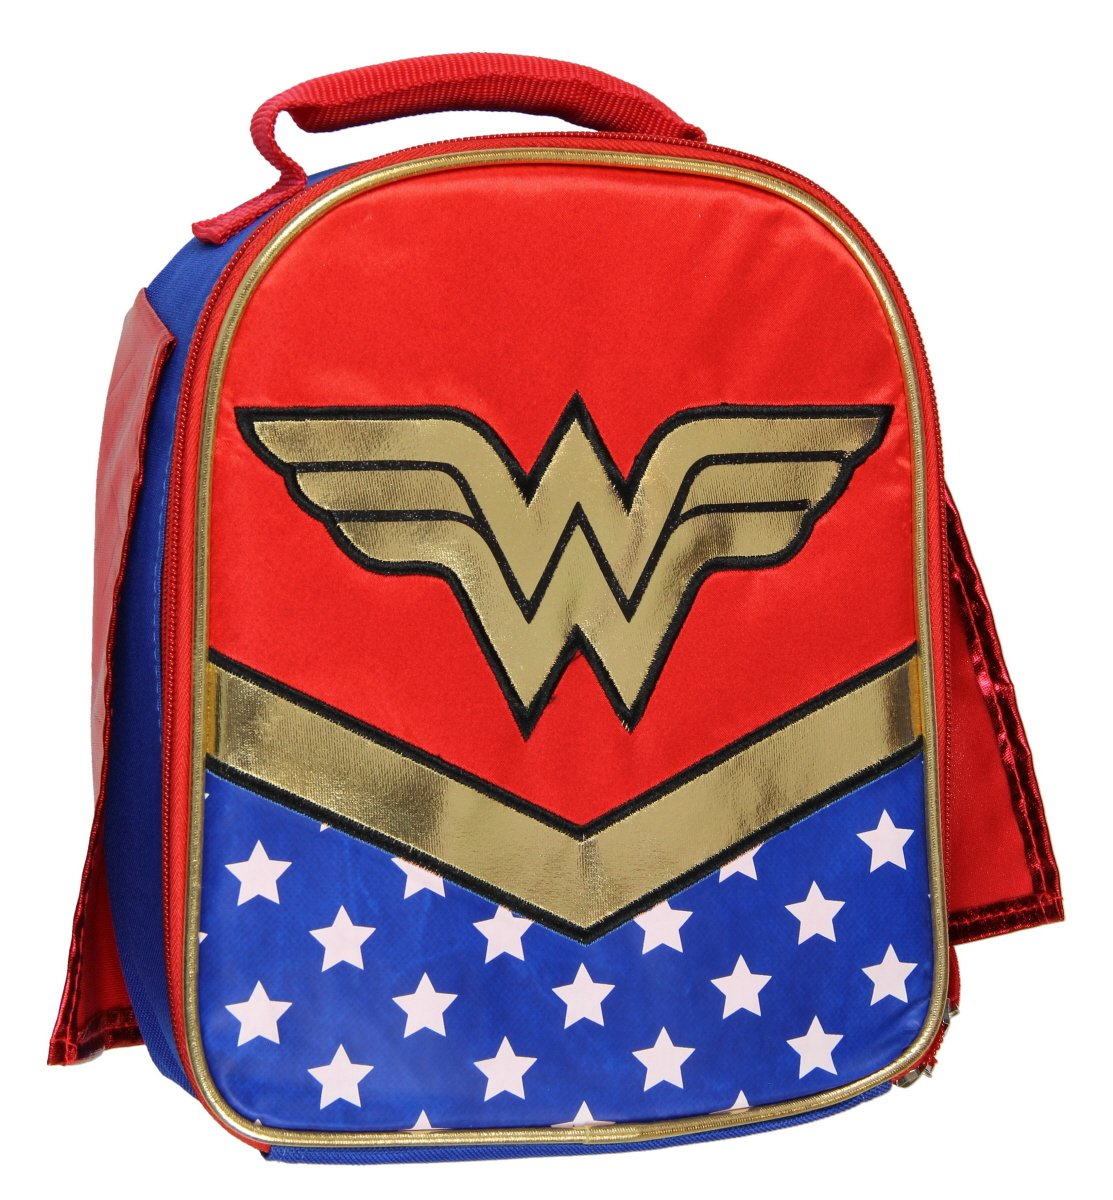 DC Wonder Woman Lunch Box Soft Kit Insulated Cooler Bag With Cape Accessory Innovations